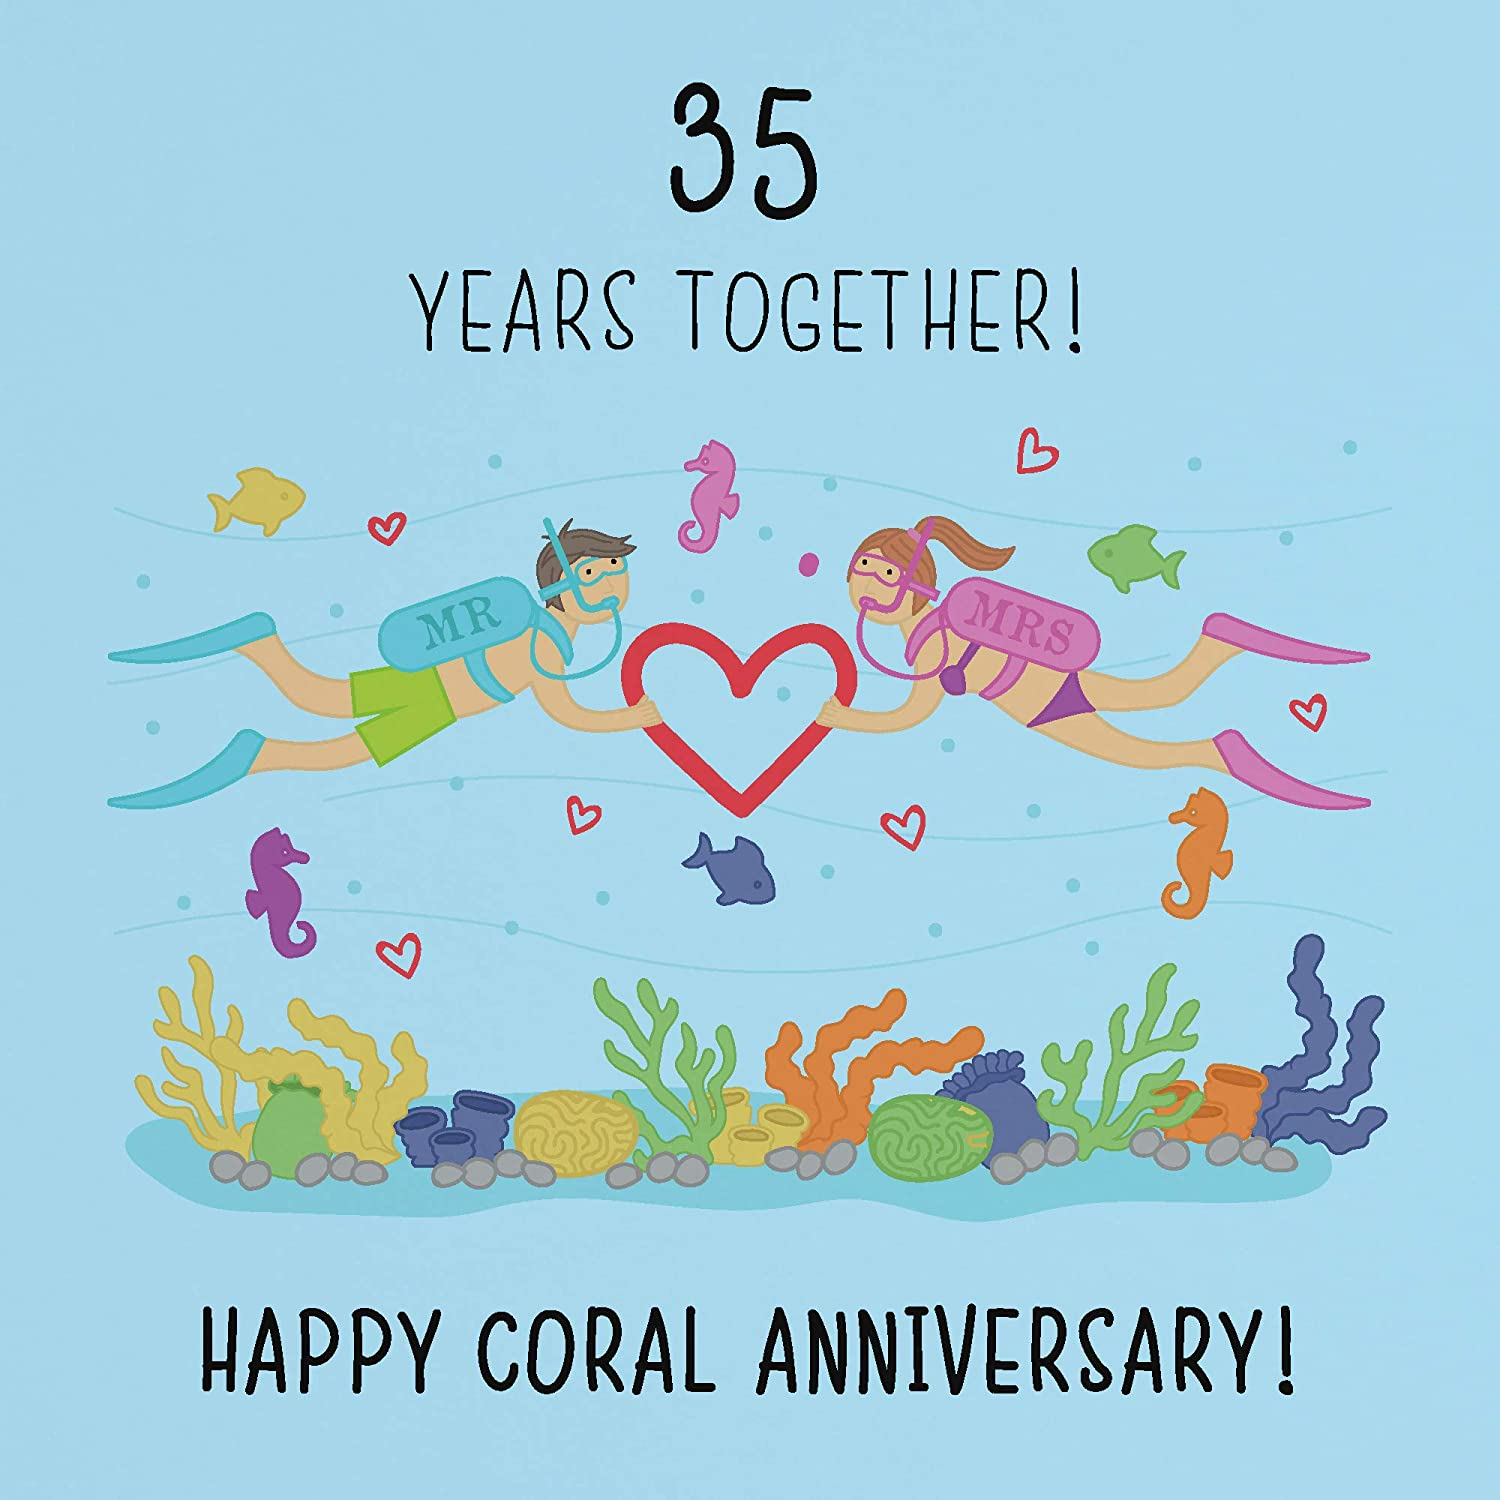 8th Wedding Anniversary Card - Coral Anniversary - Iconic Collection